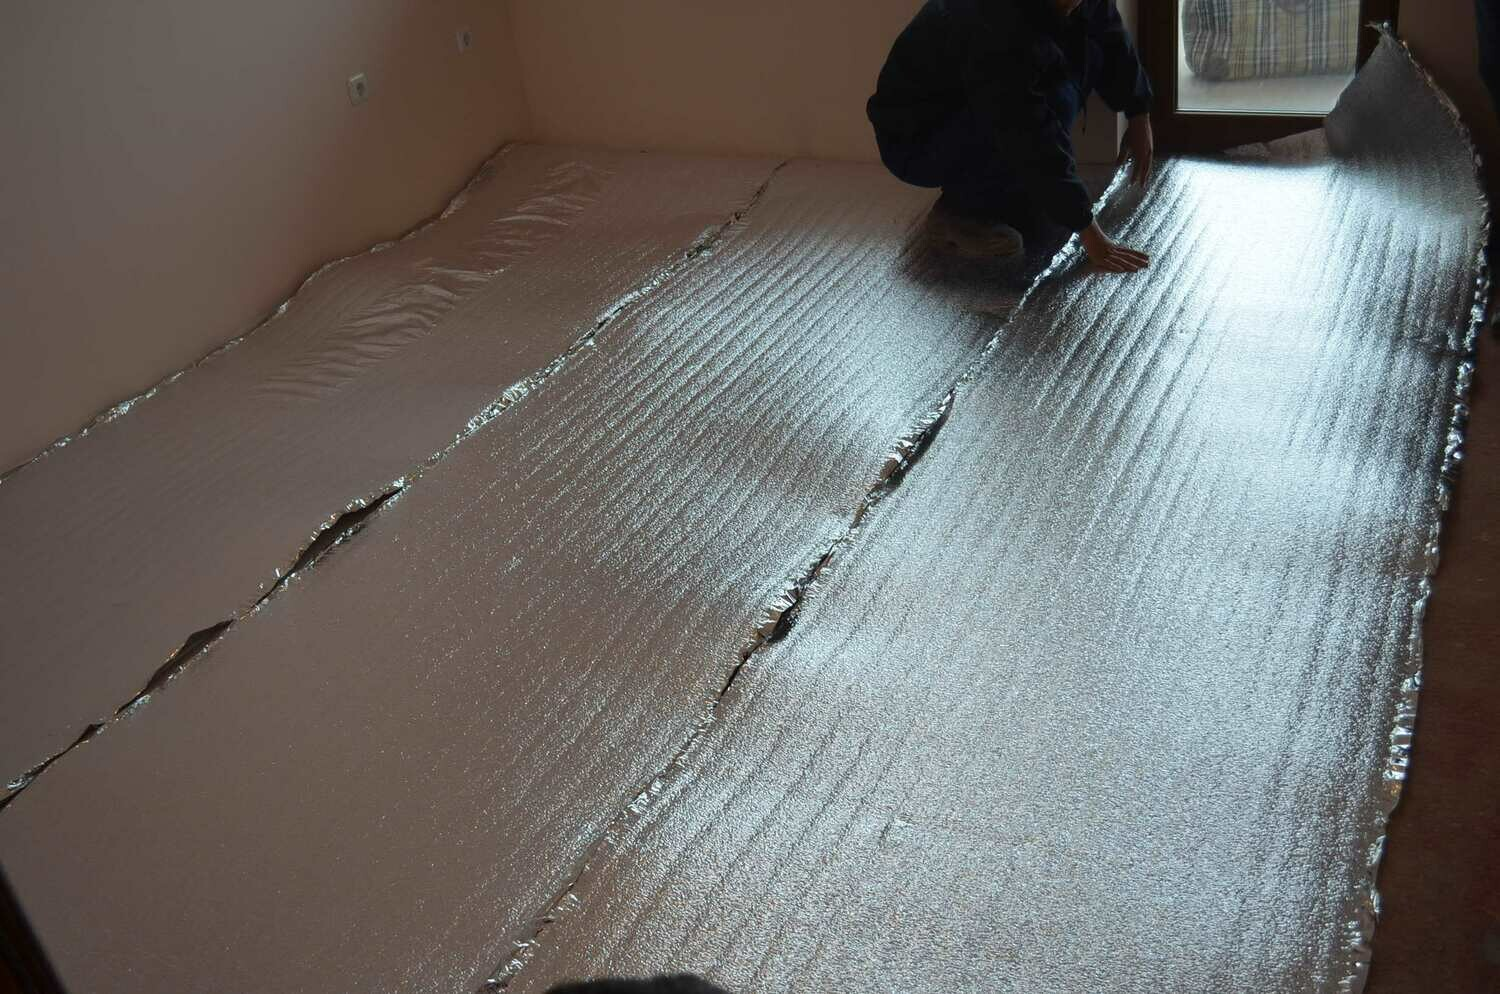 Electric Underfloor Heating sqm 1 2 3 4 5 6 7 8 9 10 m² with VDE certification